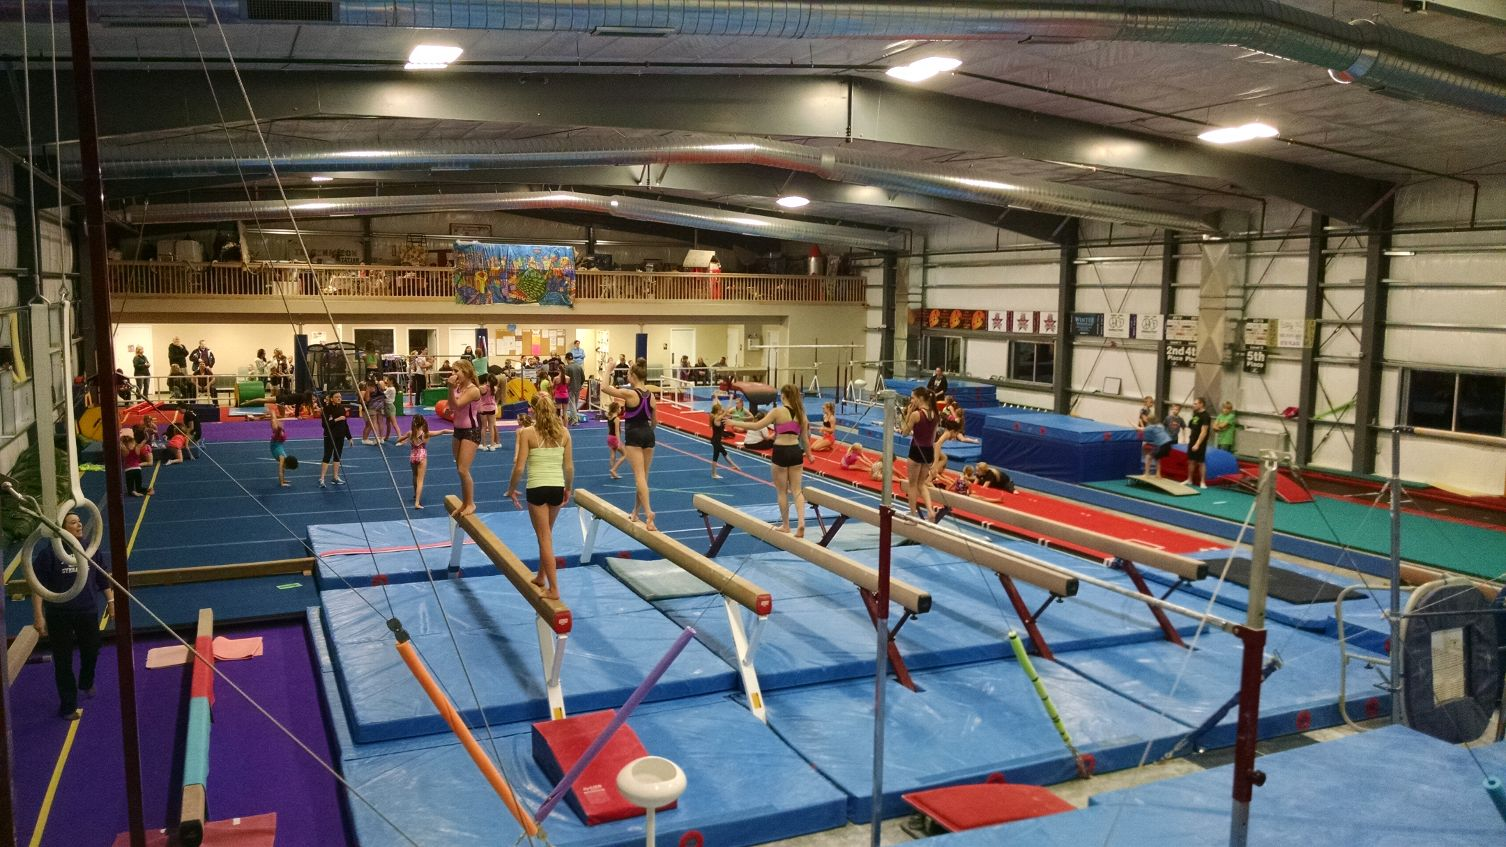 Are Interested Having A Tour Of Our Gym Please Make An Ointment Using The Form Below And We Will Show You Your Young Gymnast Around Place